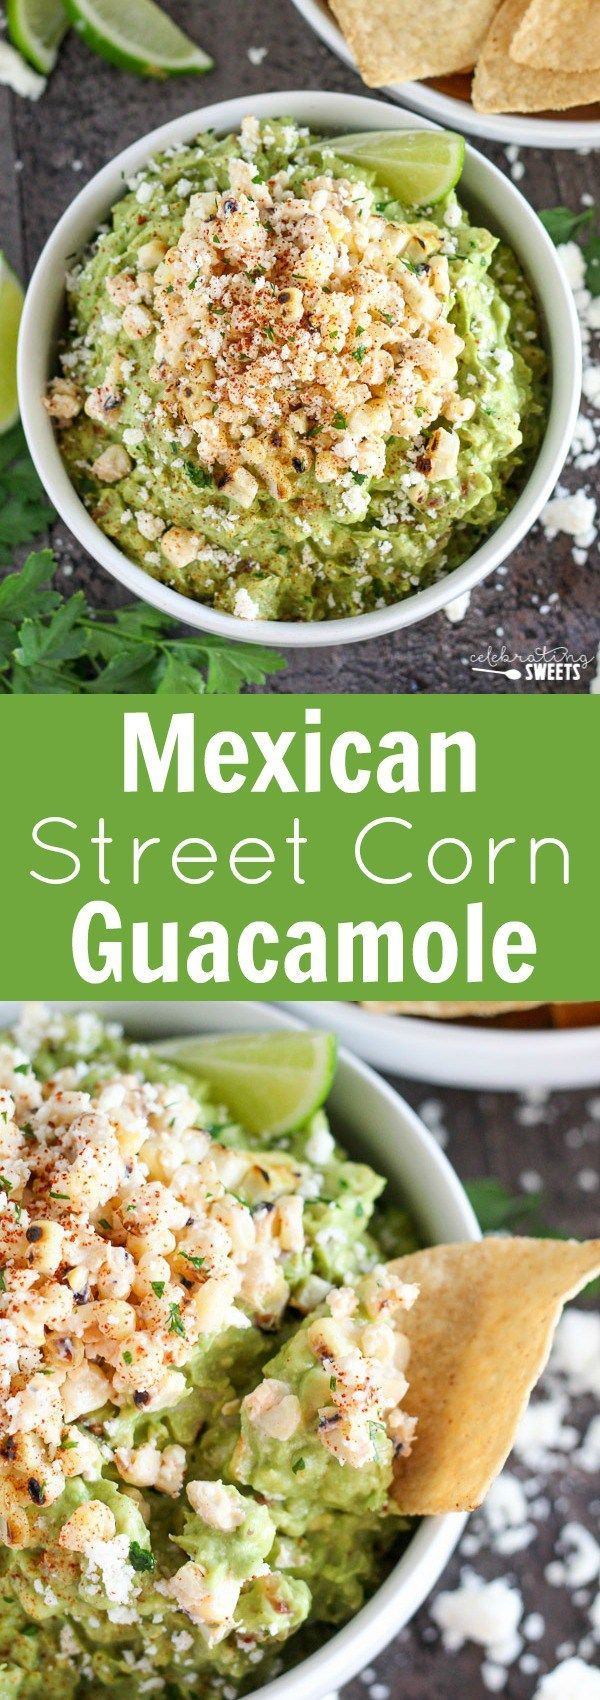 Corn Guacamole - Celebrating Sweets